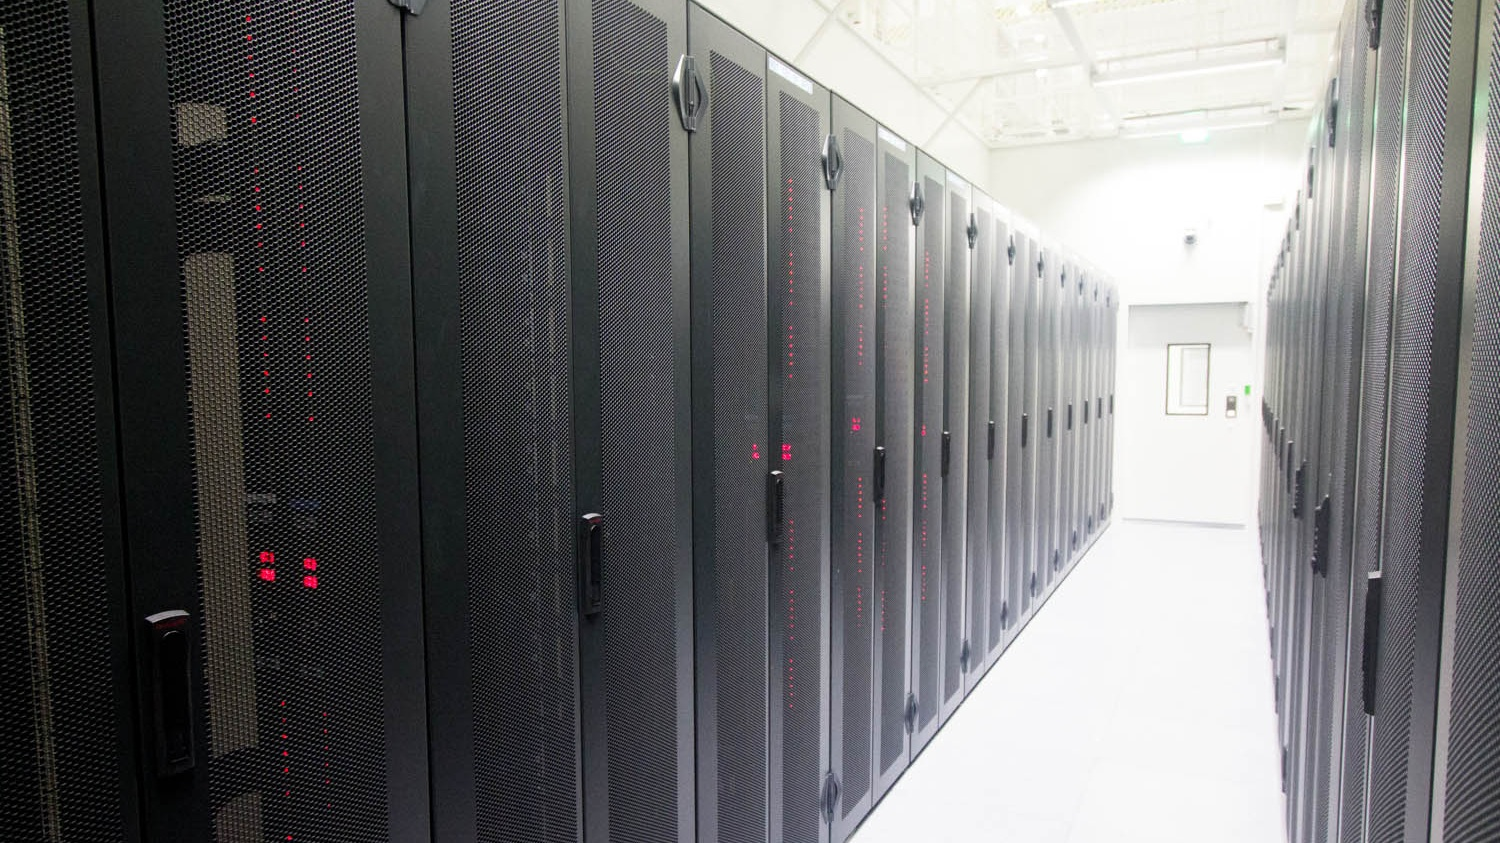 data_center%28Wikimdedia-Commons%29.jpg